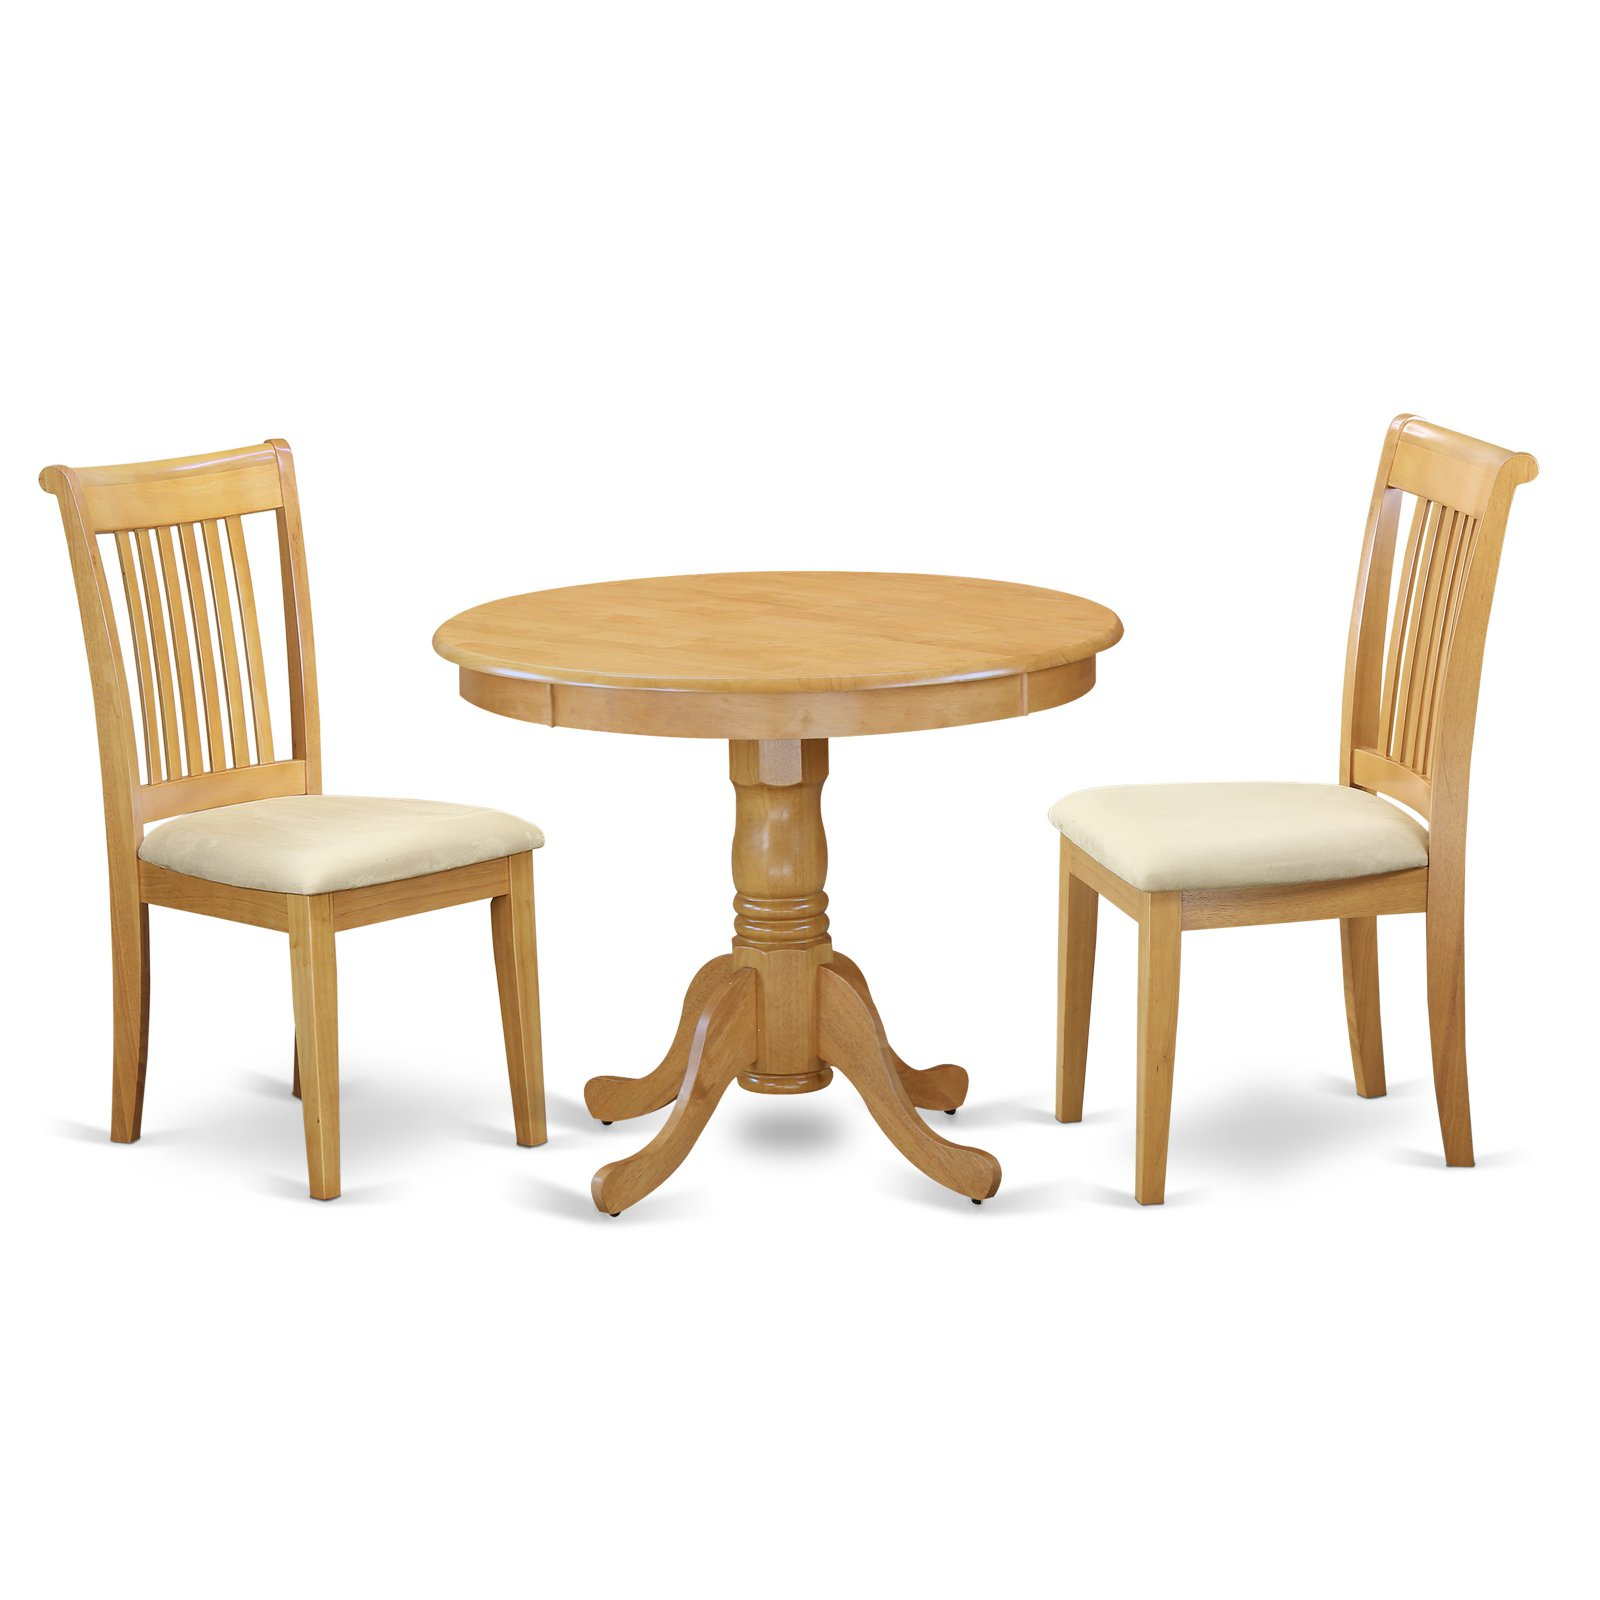 East West Furniture Antique Anpo3 Three Piece Round Pedestal Dining With Regard To Current Travon 5 Piece Dining Sets (Gallery 22 of 25)